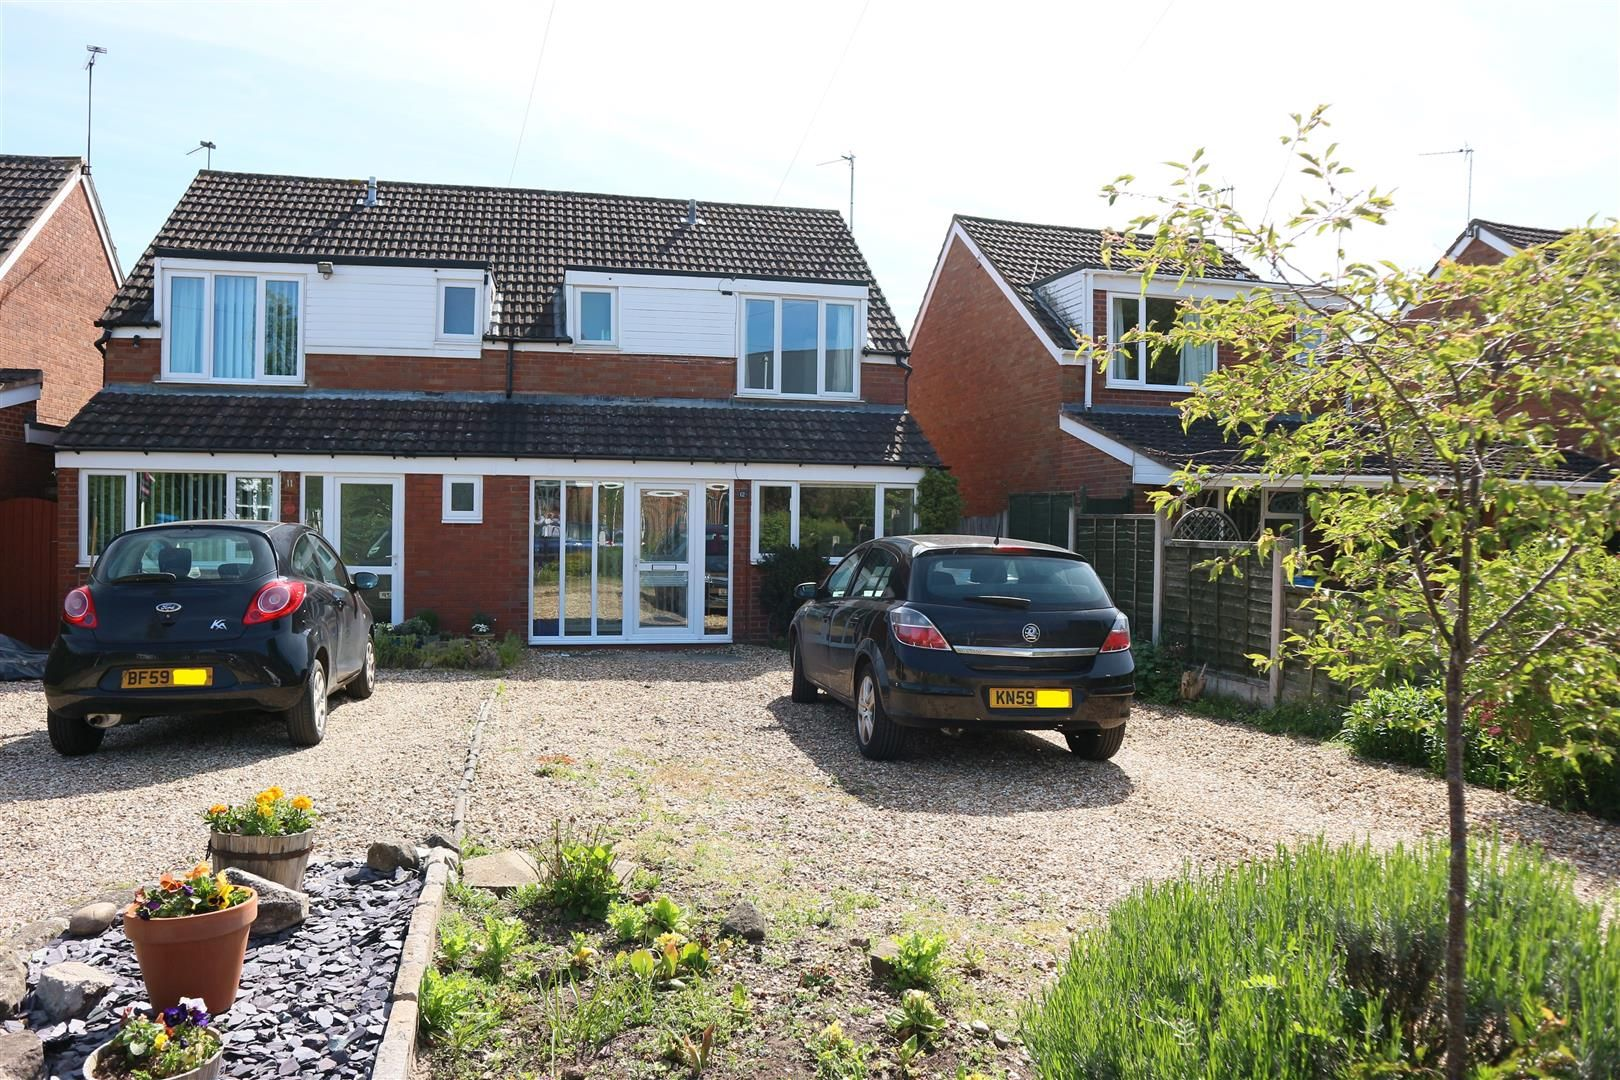 3 bed semi-detached for sale in Kinver  - Property Image 1